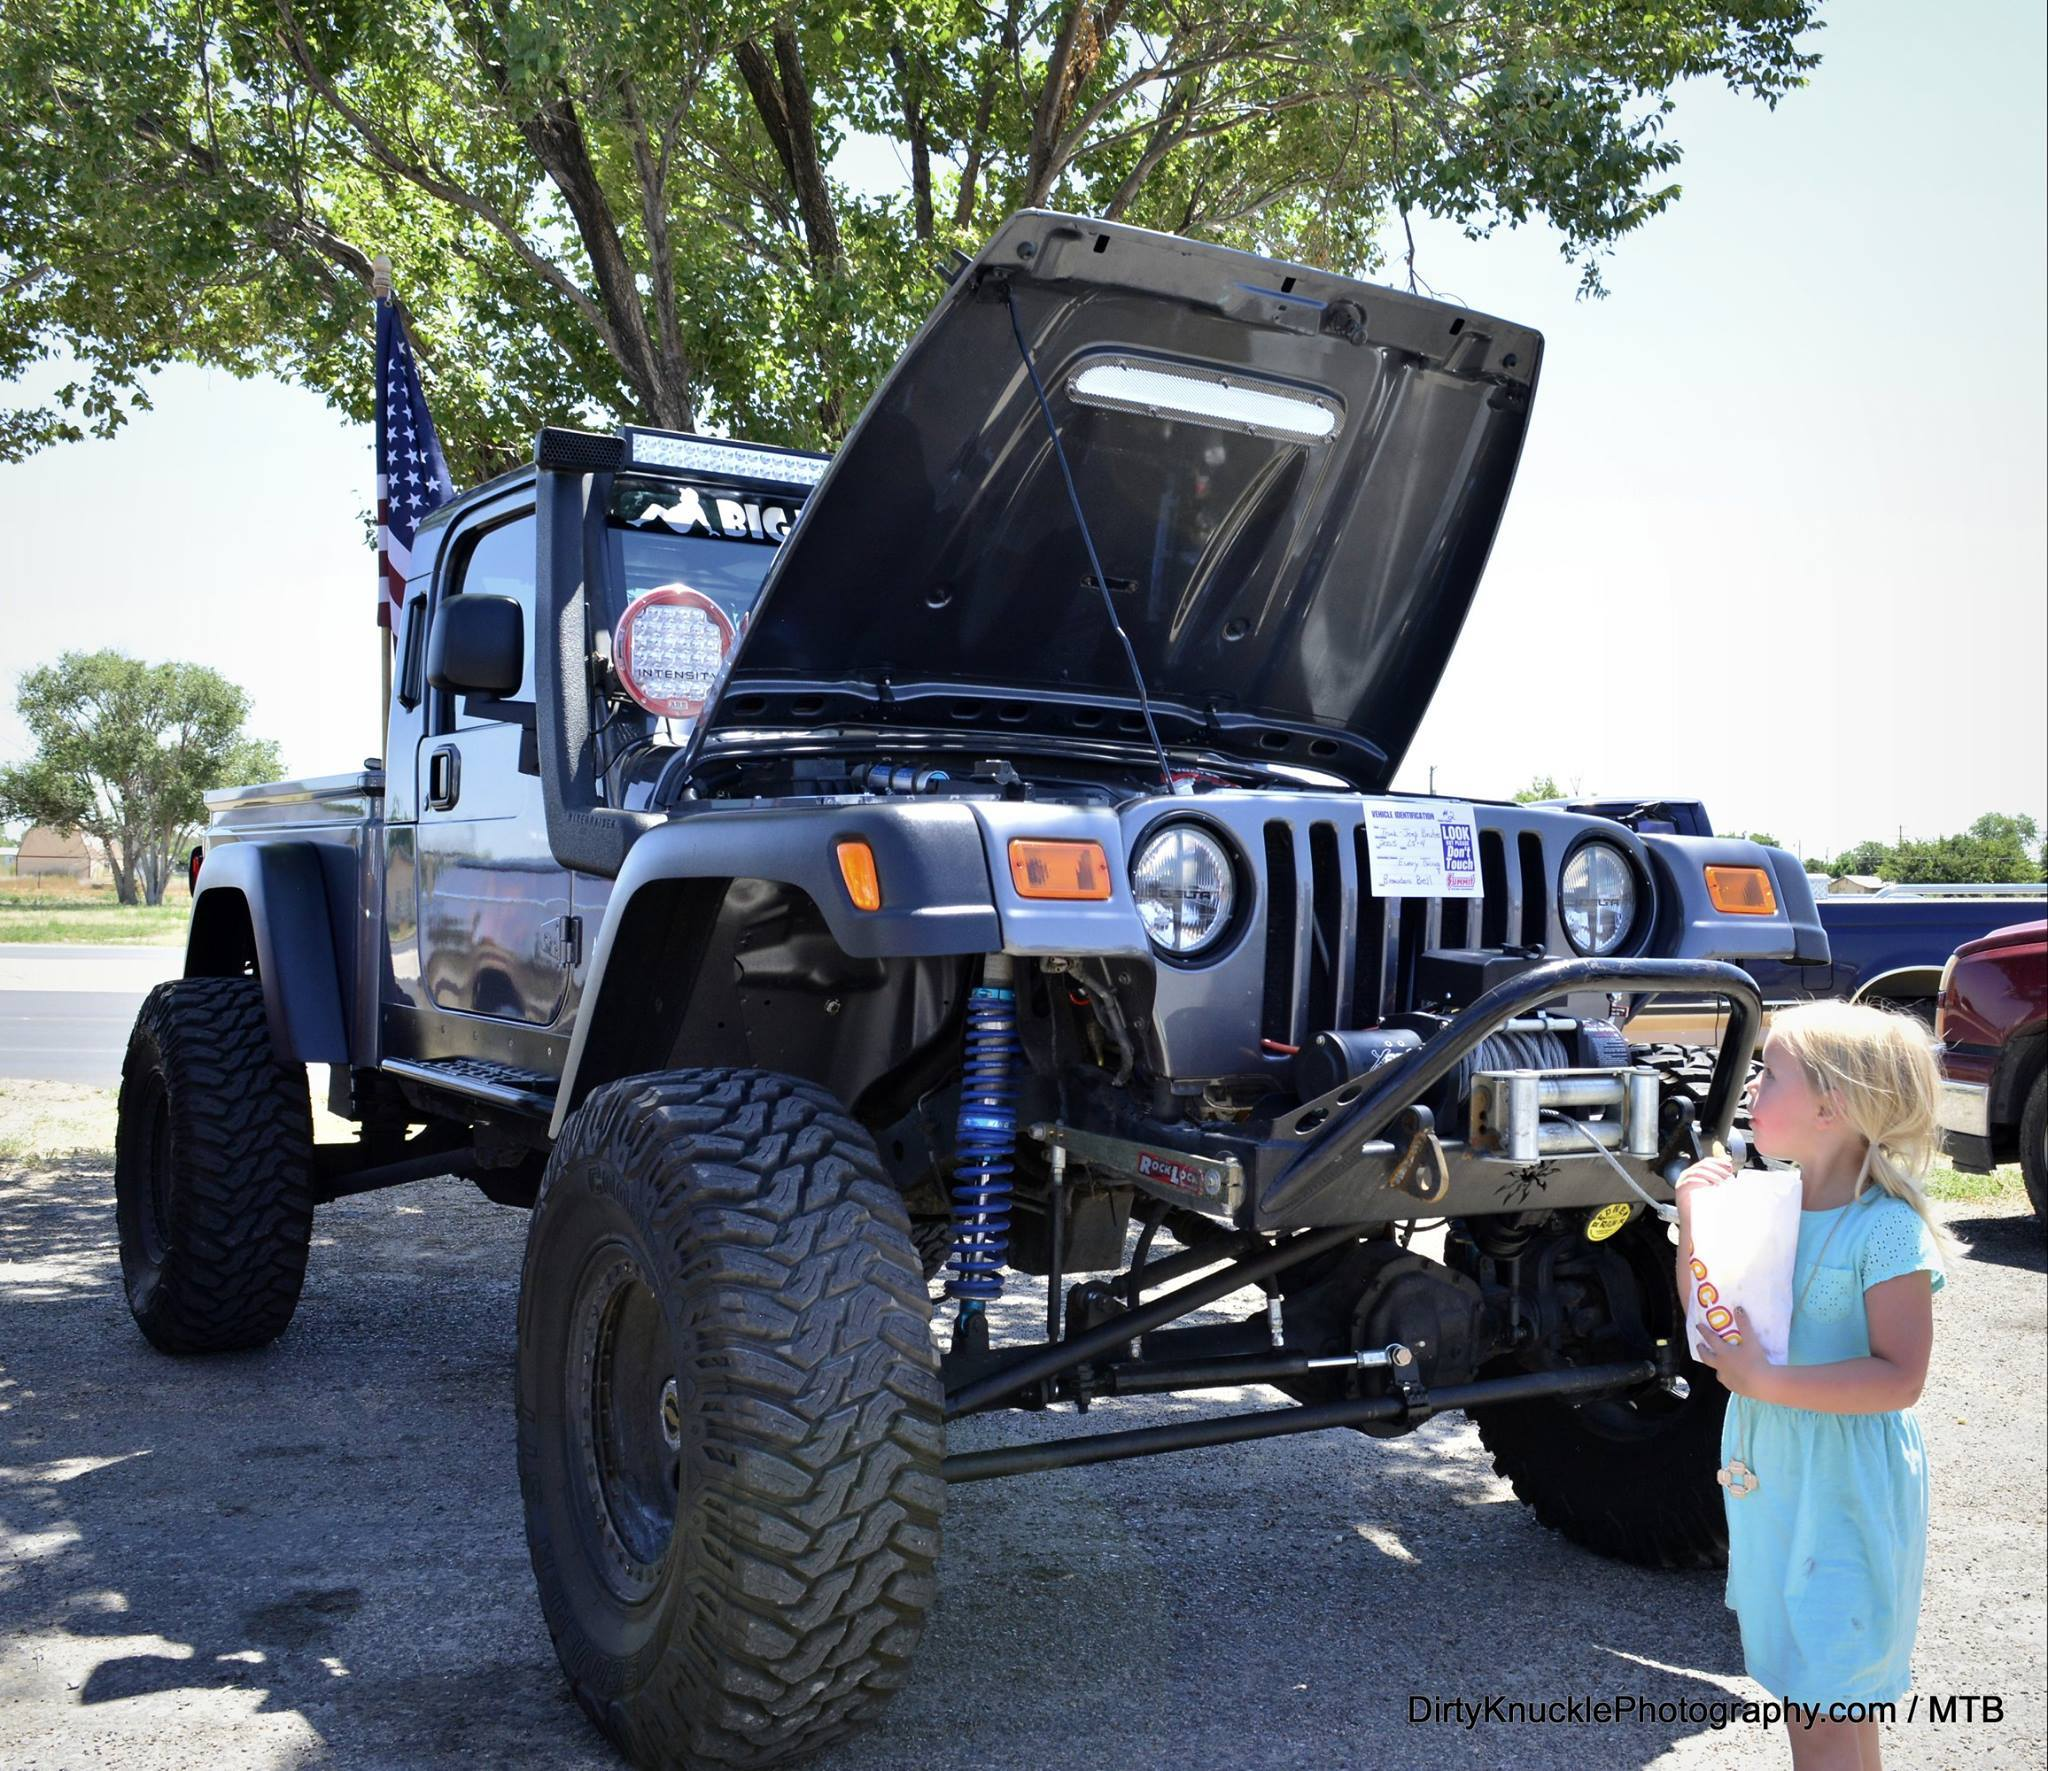 Built 05 Jeep TJ BRUTE for sale American Expedition Vehicles